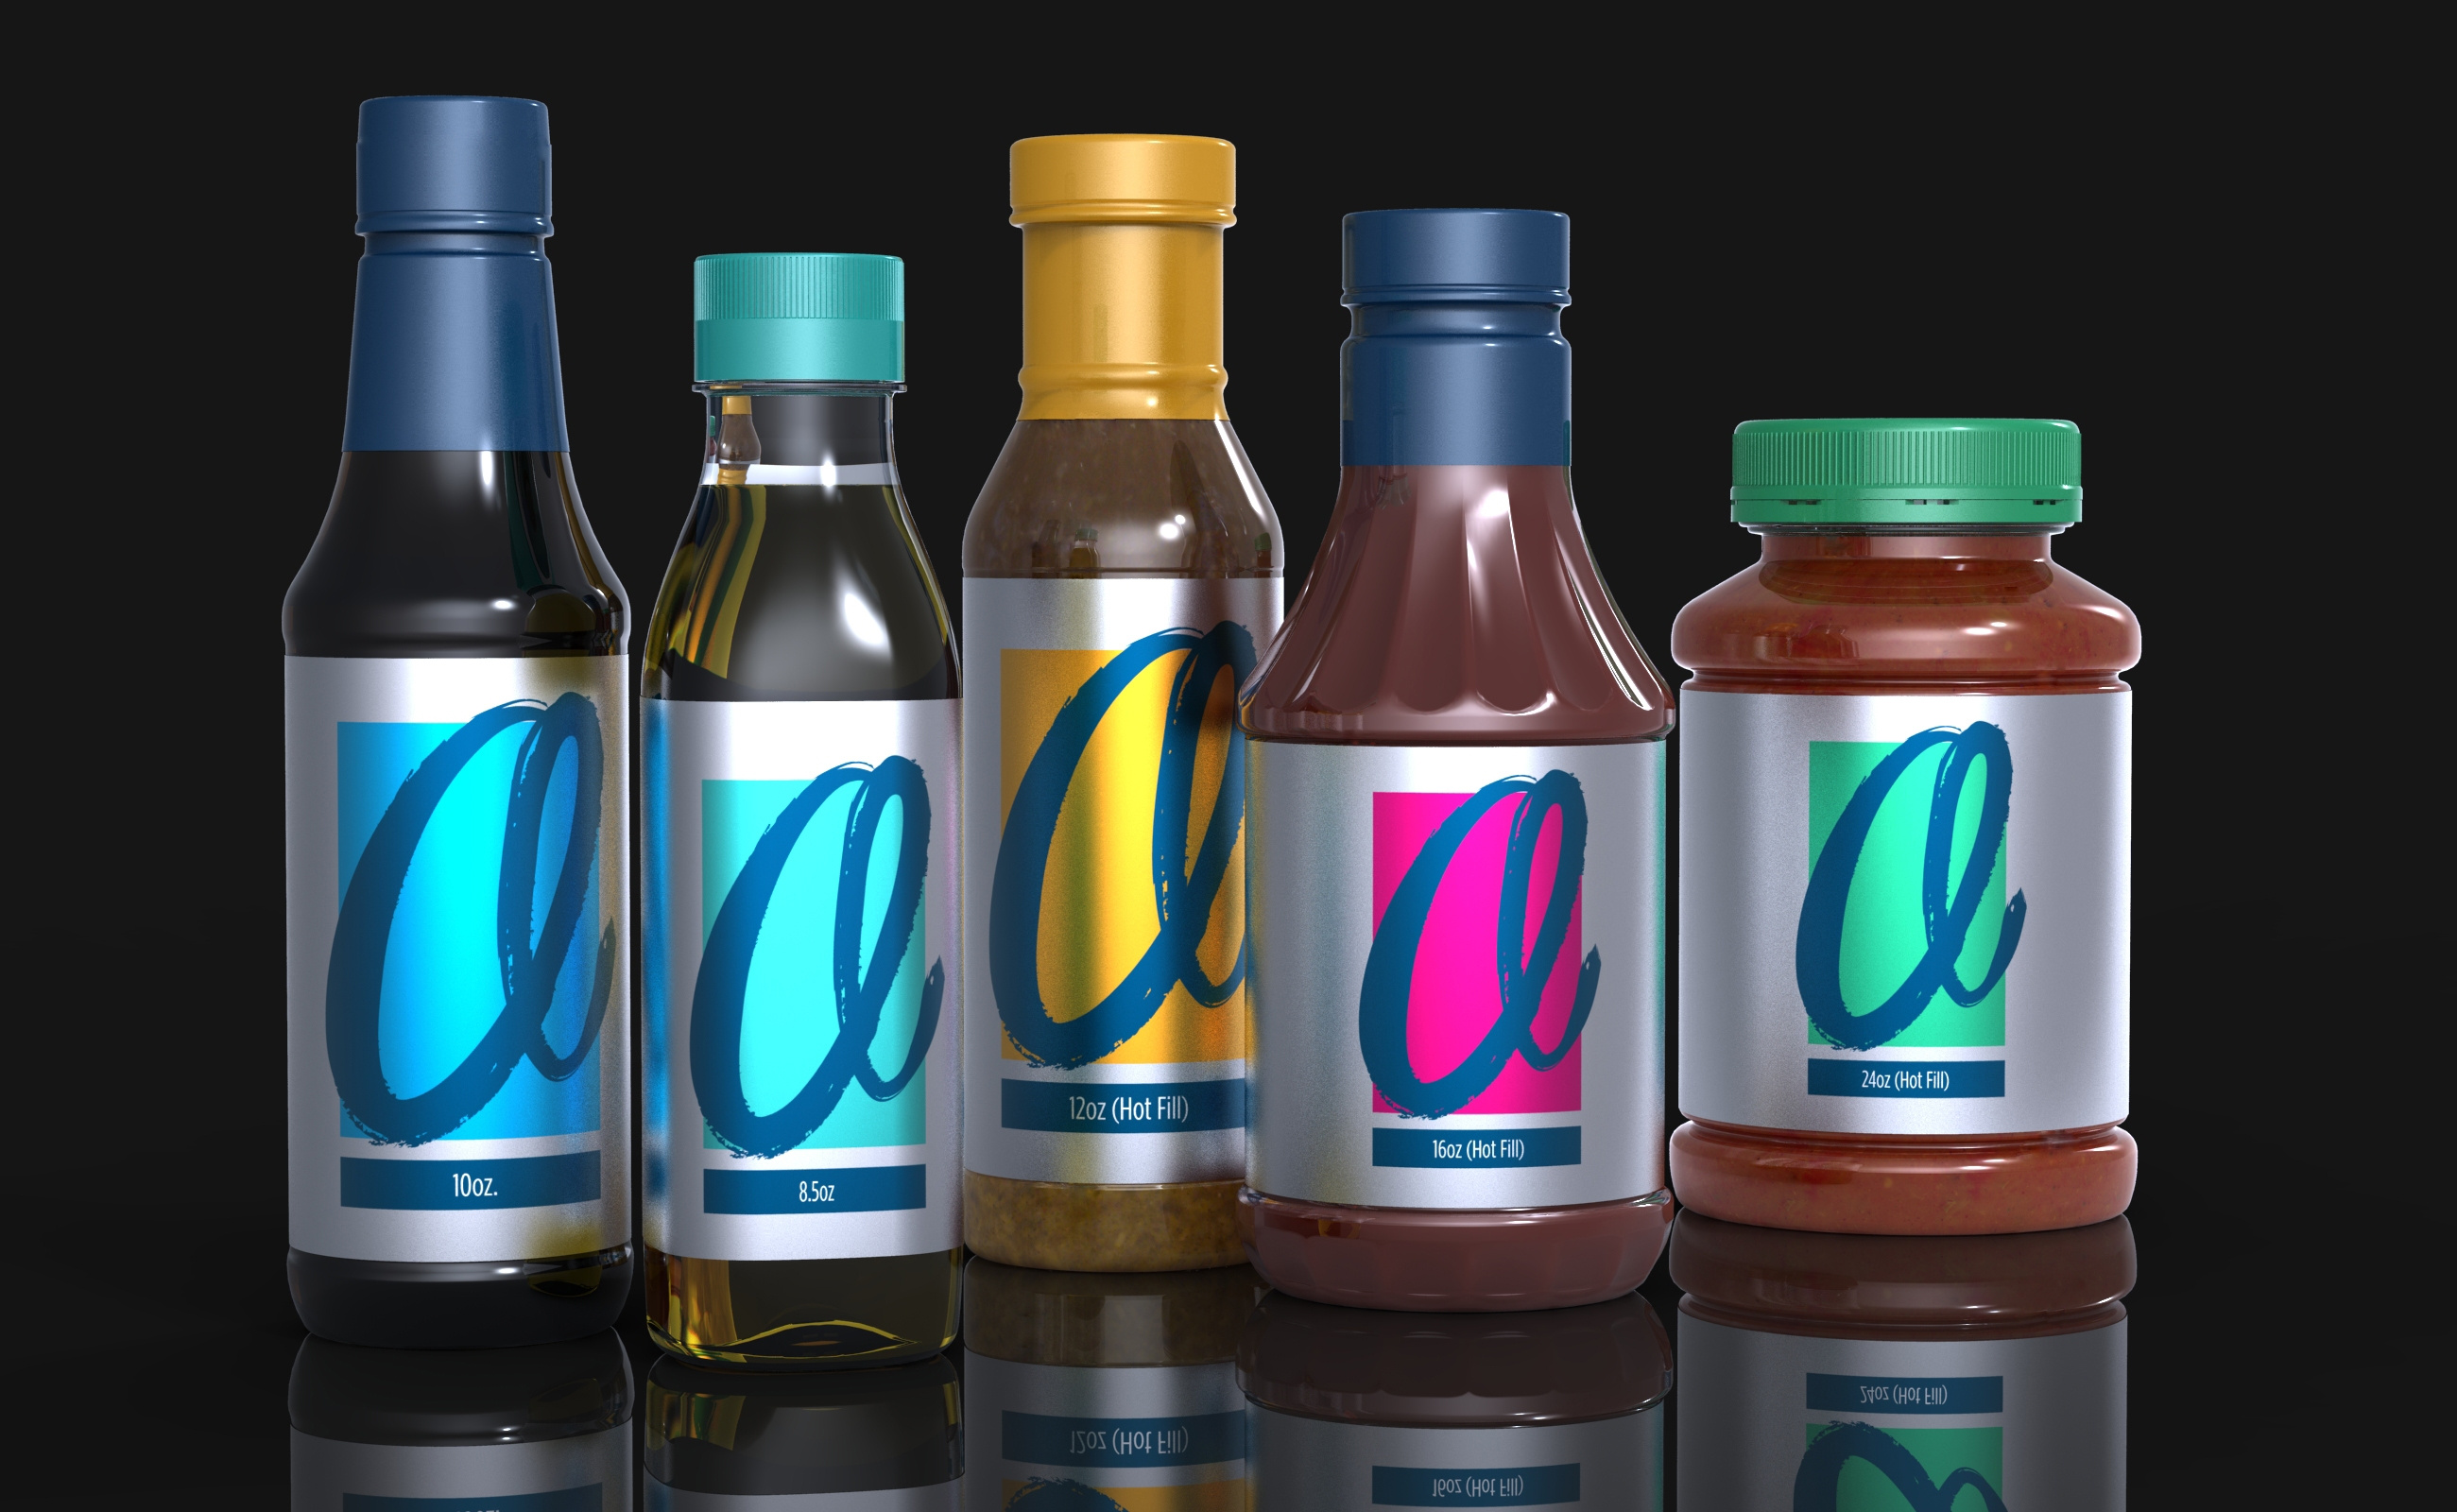 Amcor Partners with Retailers and Co-Packers to Create Distinctive Private Label and Store Brand Packaging